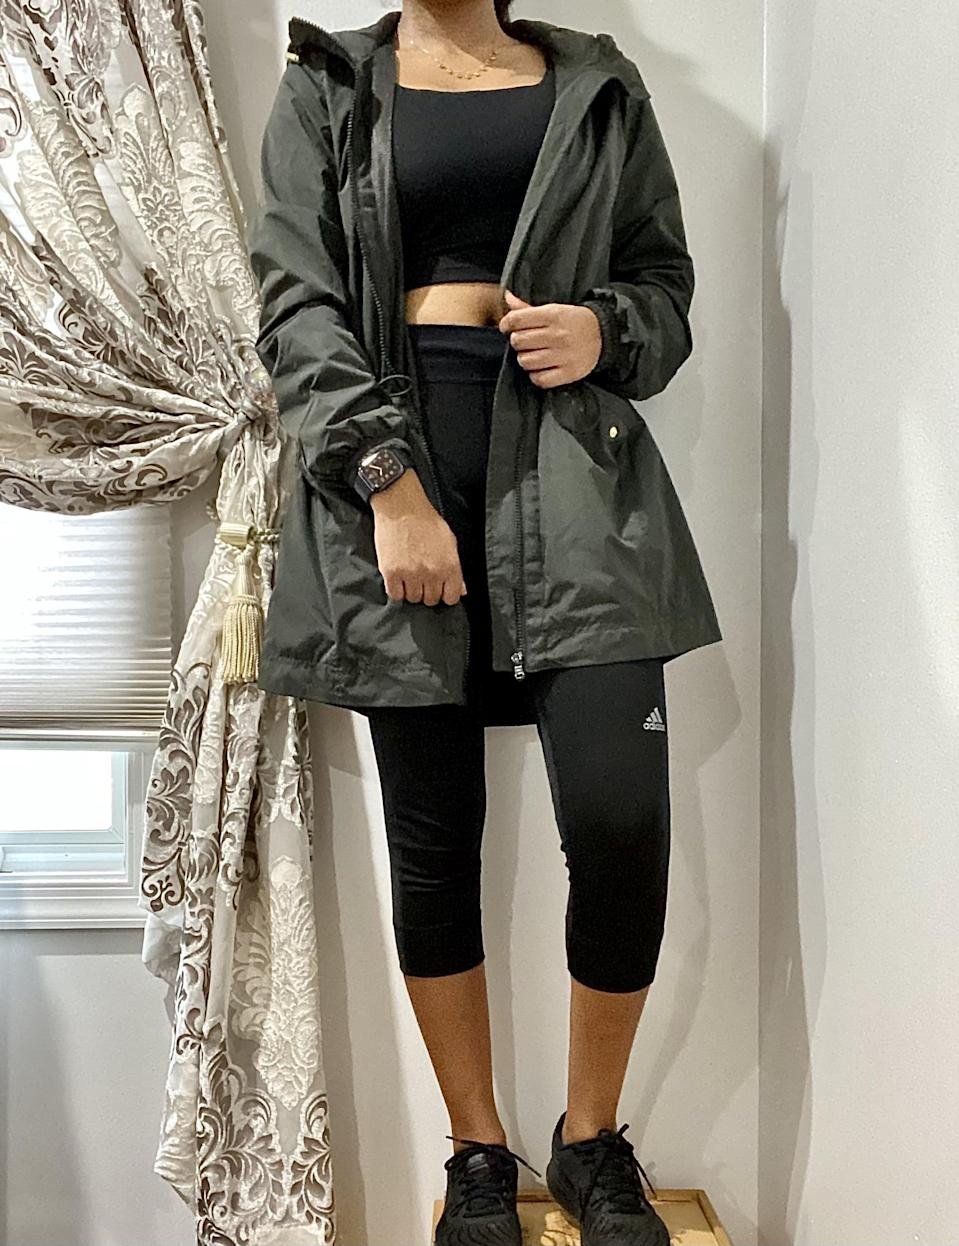 """<p><strong>The item:</strong> <span>Go-H20 Water-Resistant Hooded Anorak for Women</span> ($55)</p> <p><strong>What our editor said:</strong> """"I'm a petite person, and outerwear looks significantly oversized on me but not in a cute <a class=""""link rapid-noclick-resp"""" href=""""https://www.popsugar.com/Ariana-Grande"""" rel=""""nofollow noopener"""" target=""""_blank"""" data-ylk=""""slk:Ariana Grande"""">Ariana Grande</a> way, more like in an overwhelming way, like I'm being engulfed in a sea of jackets. What I love about this jacket is that it has an adjustable drawcord at the cinch of the waist. It gives the jacket some shape and makes me look like I have proper curves and not just wearing a poncho from a Niagara Falls tour. I also love that the cuffs of the sleeves are cinched in with elastic bands."""" - Anvita Reddy, editorial coordinator, Shop </p> <p>If you want to read more, here is the <a href=""""https://www.popsugar.com/fashion/old-navy-weather-proof-jacket-review-47963234"""" class=""""link rapid-noclick-resp"""" rel=""""nofollow noopener"""" target=""""_blank"""" data-ylk=""""slk:complete review"""">complete review</a>.</p>"""